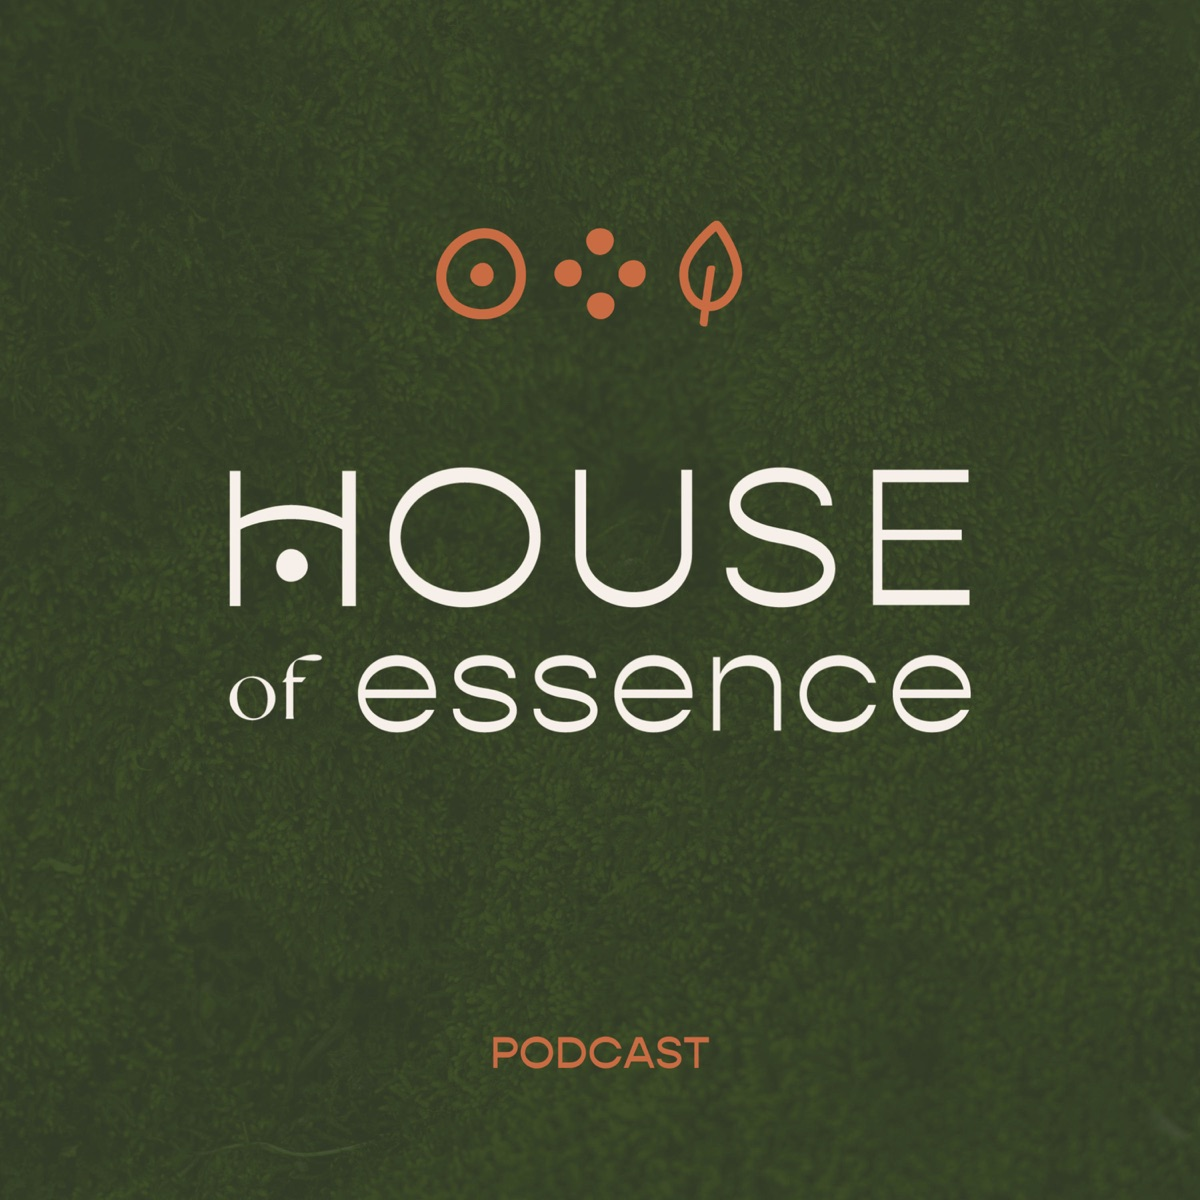 House of Essence